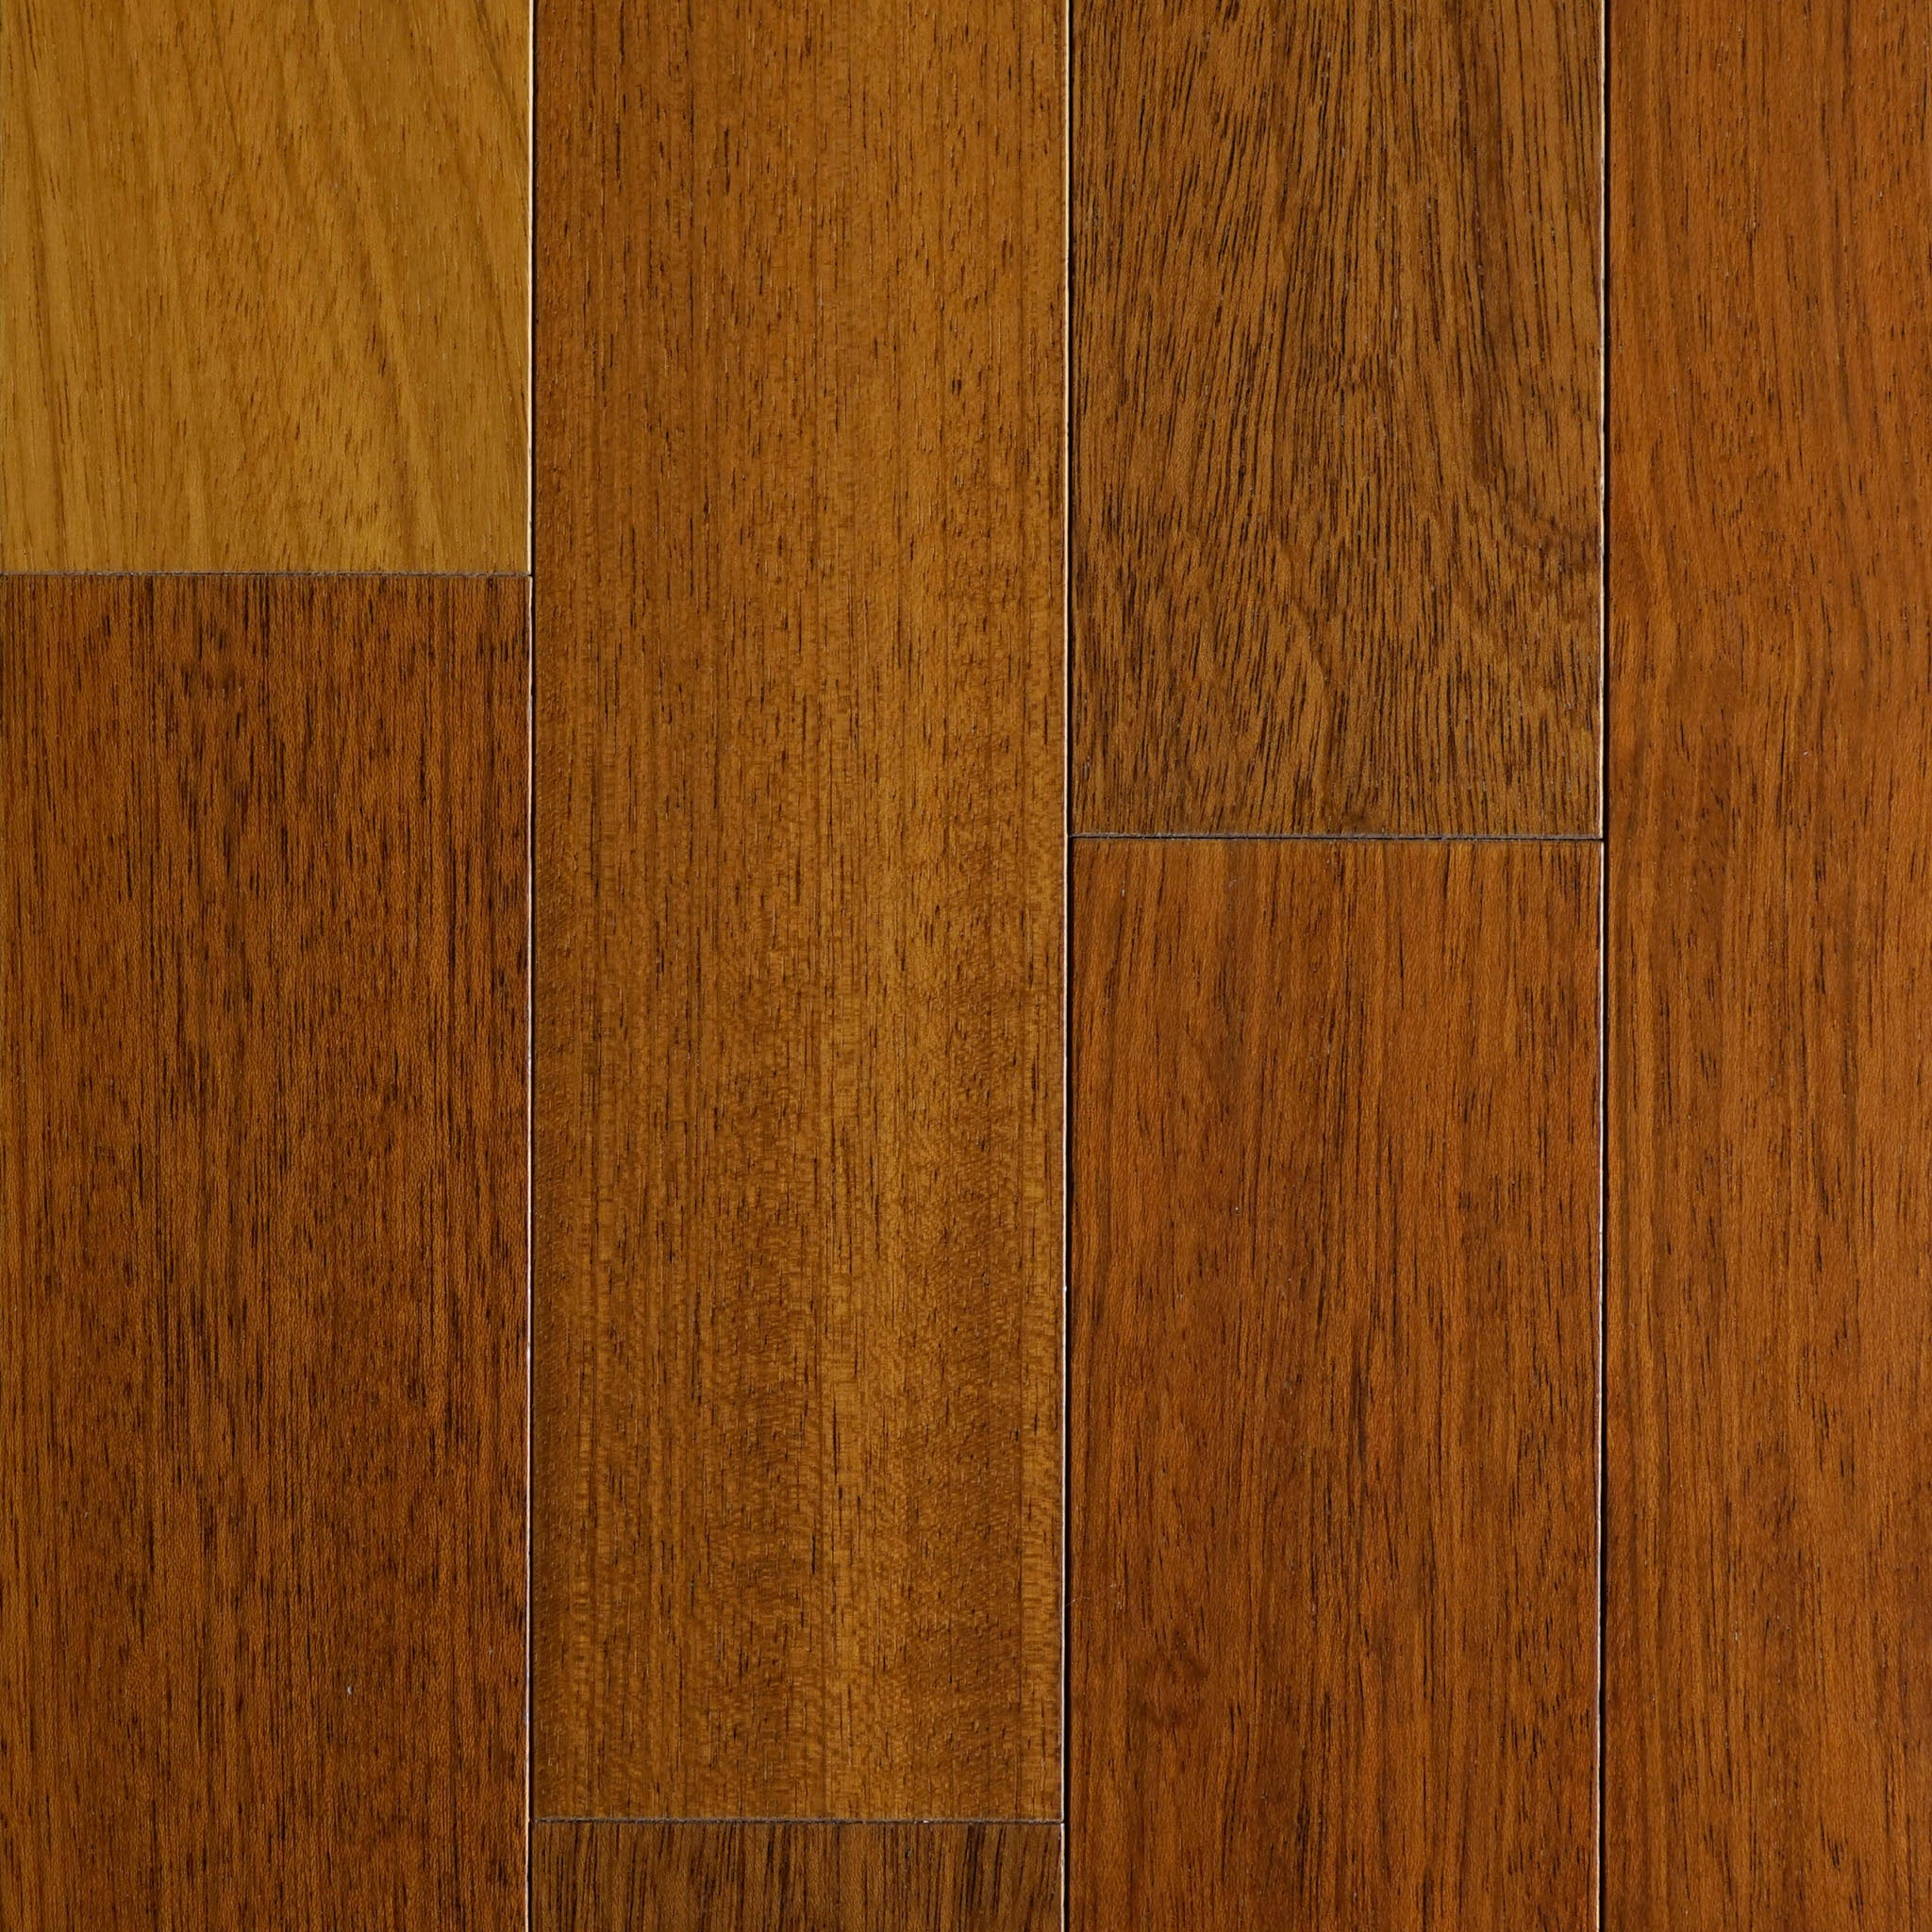 Natural Jatoba